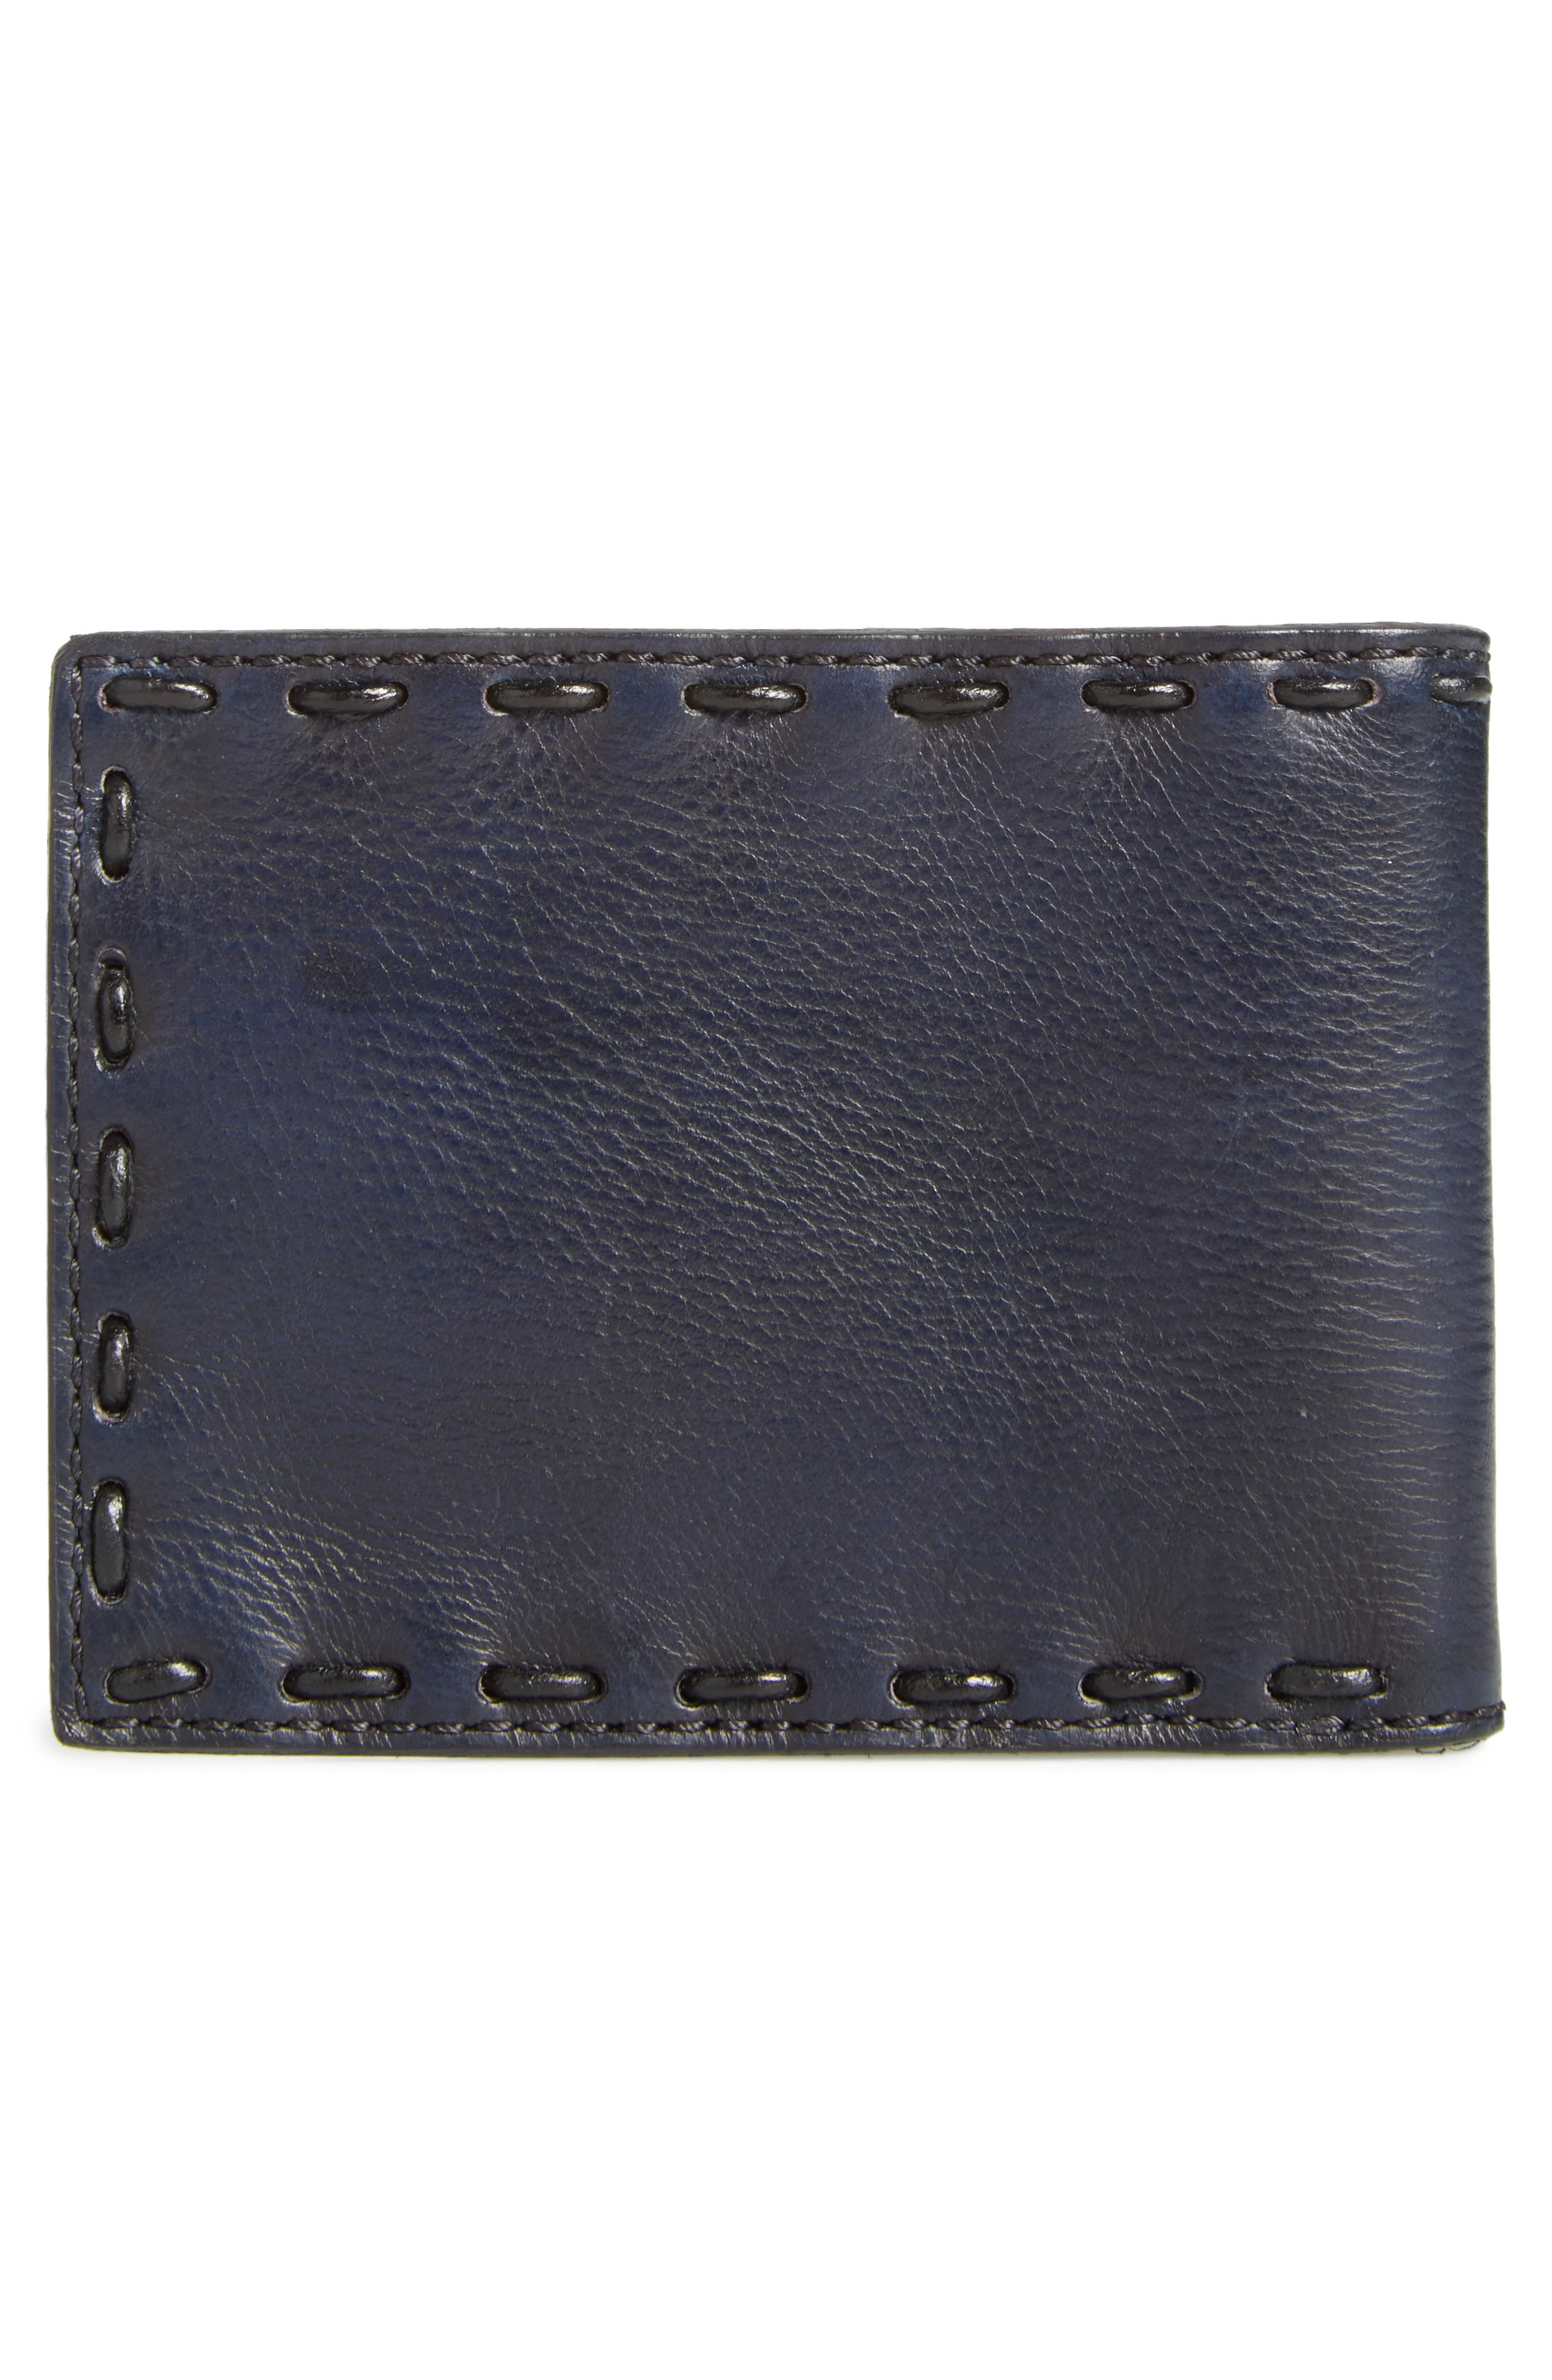 Pickstitch Leather Bifold Wallet,                             Alternate thumbnail 5, color,